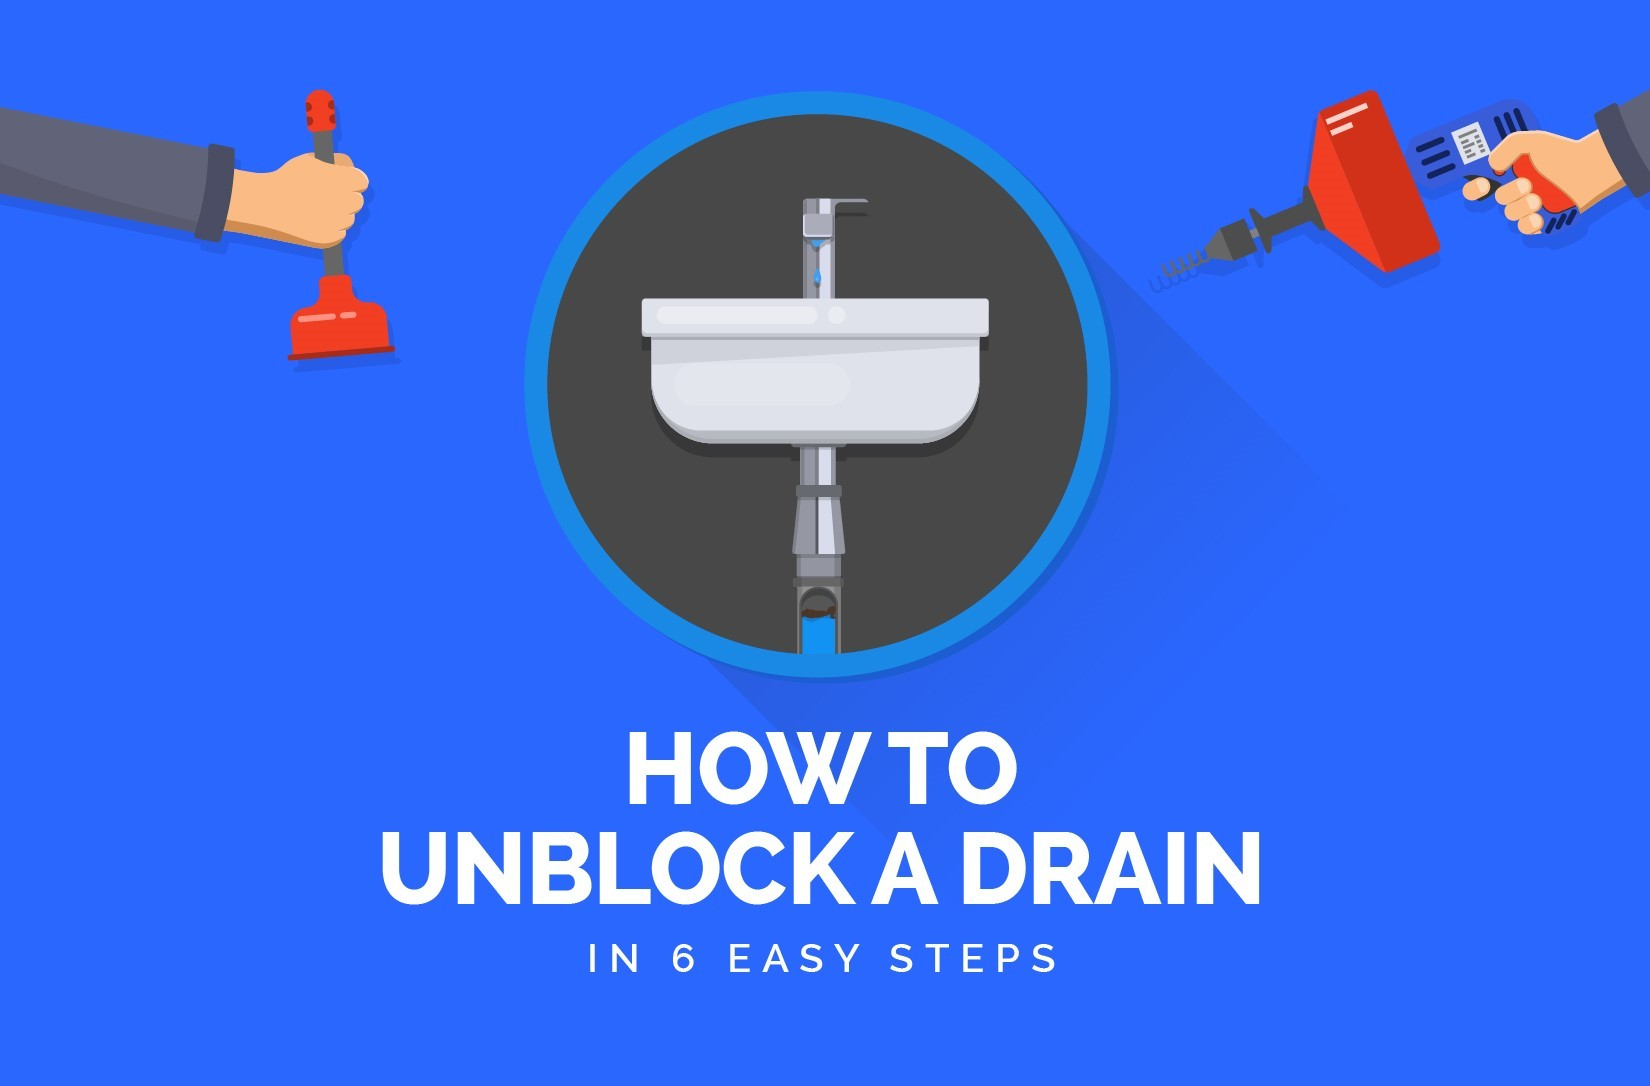 how to unblock a drain banner